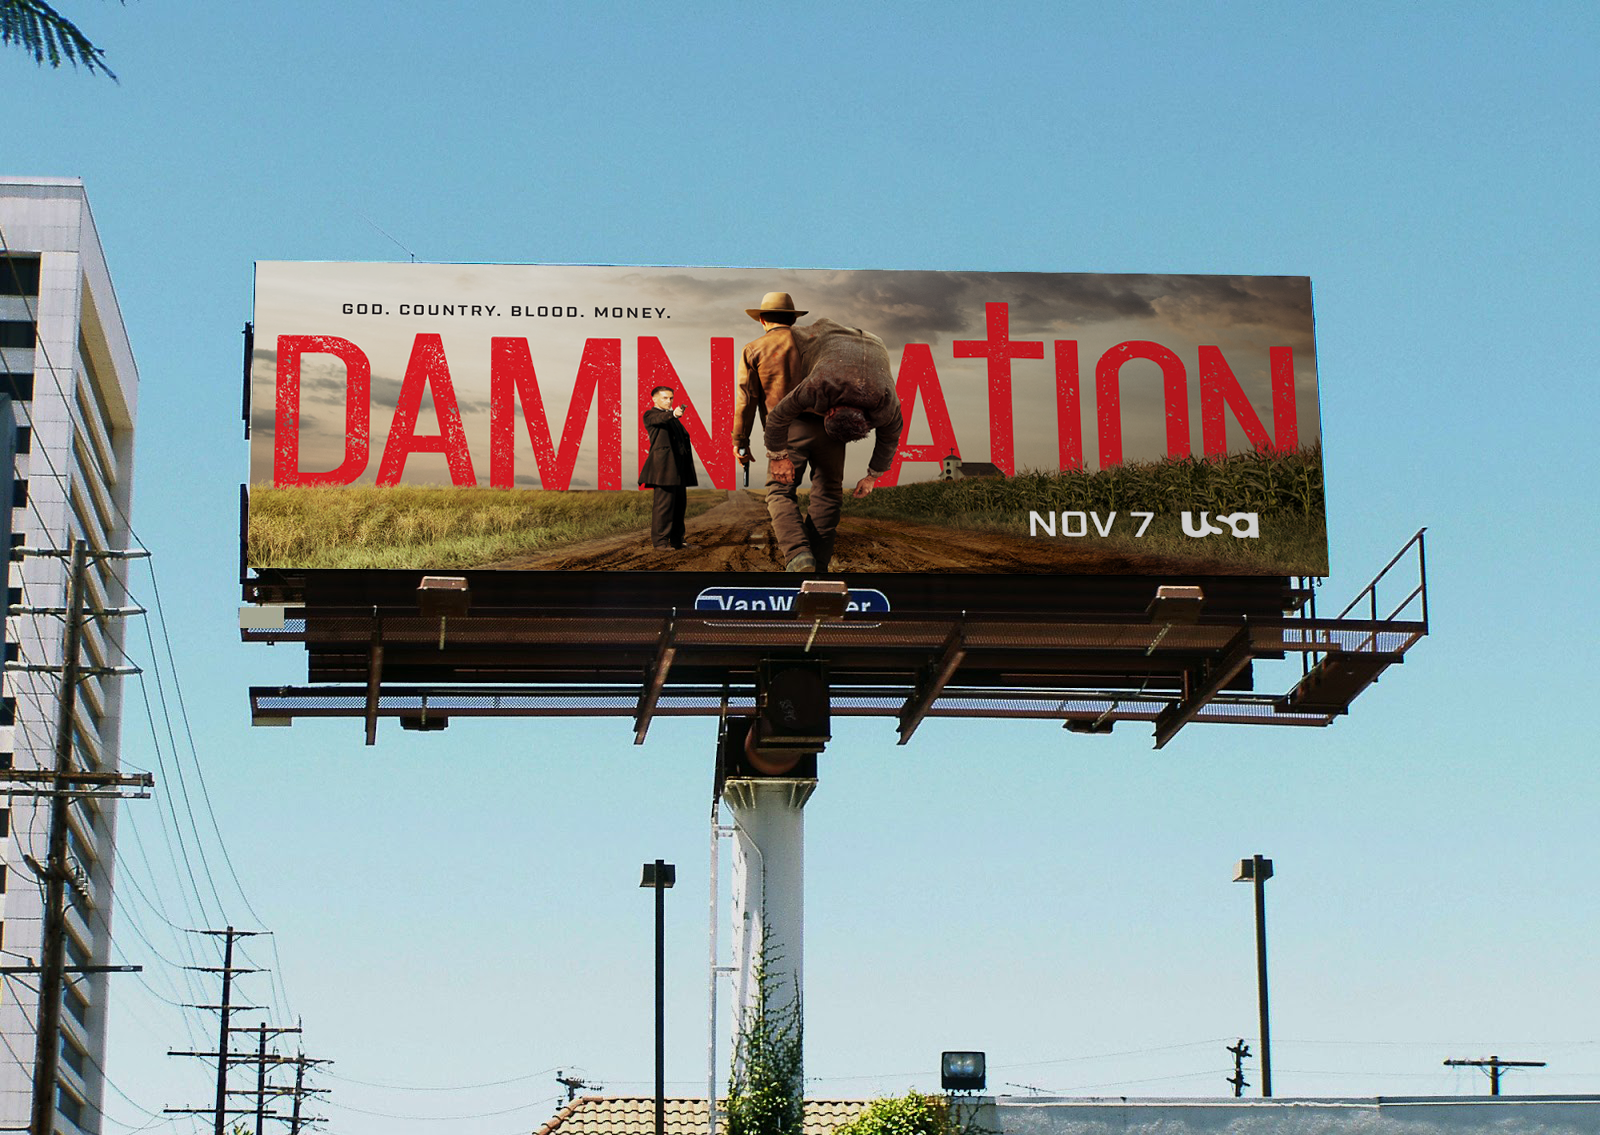 Damnation-Billboard.png